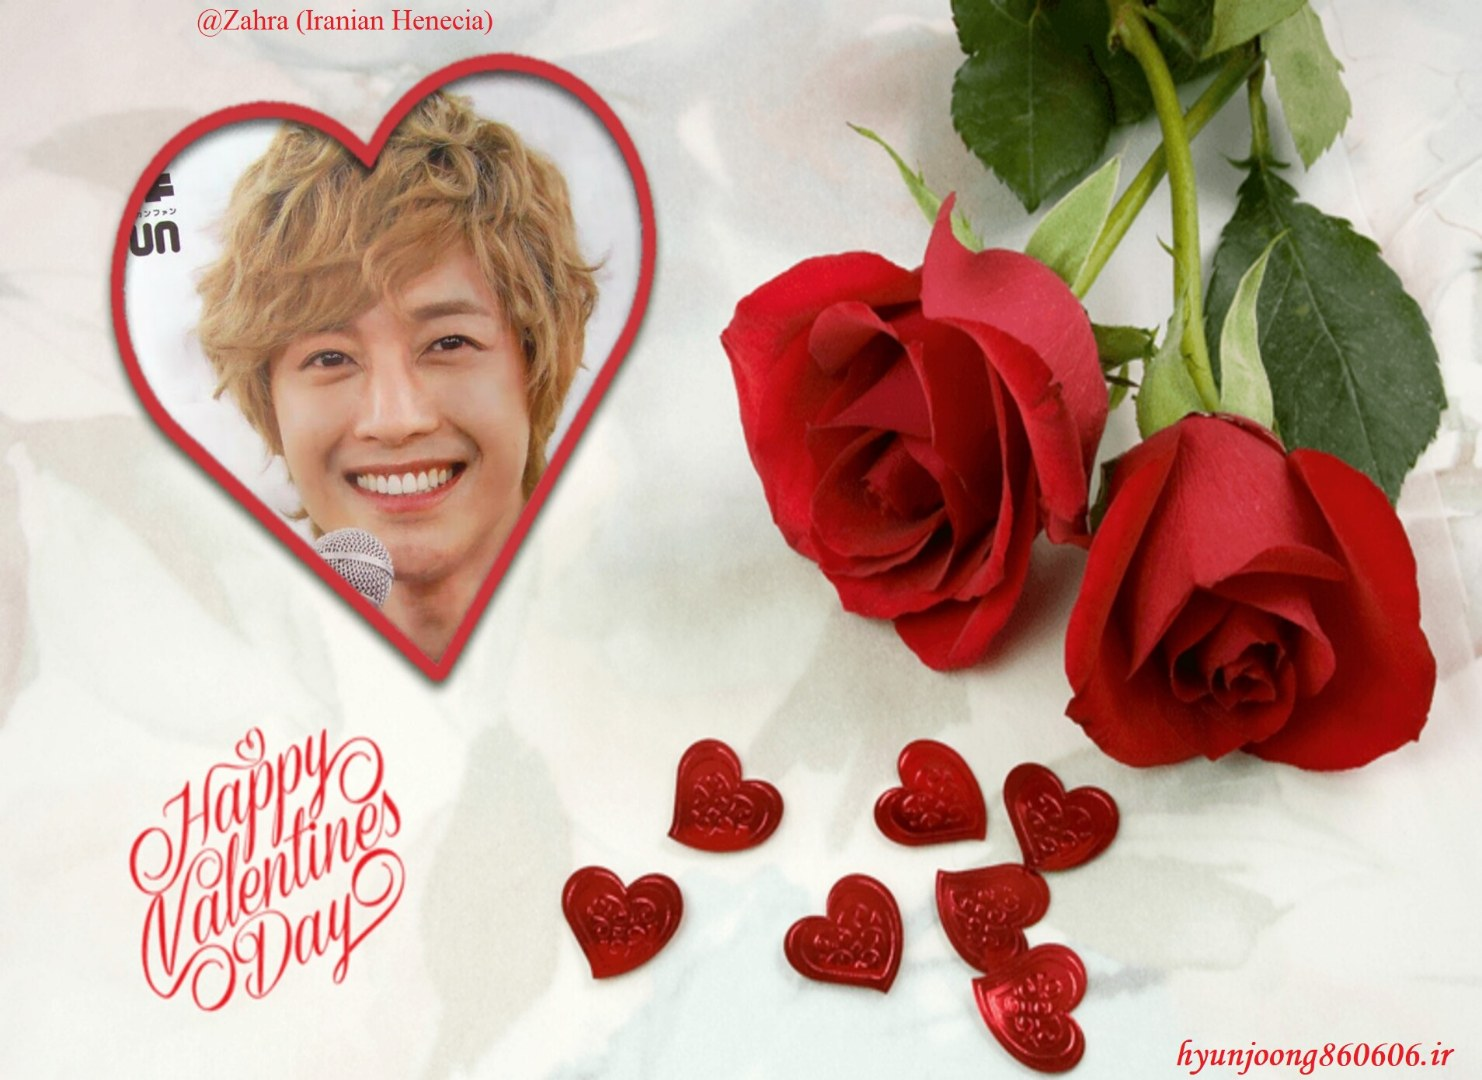 My Fanart of Happy Valentine Day 2018 to Hyun Joong and Henecia